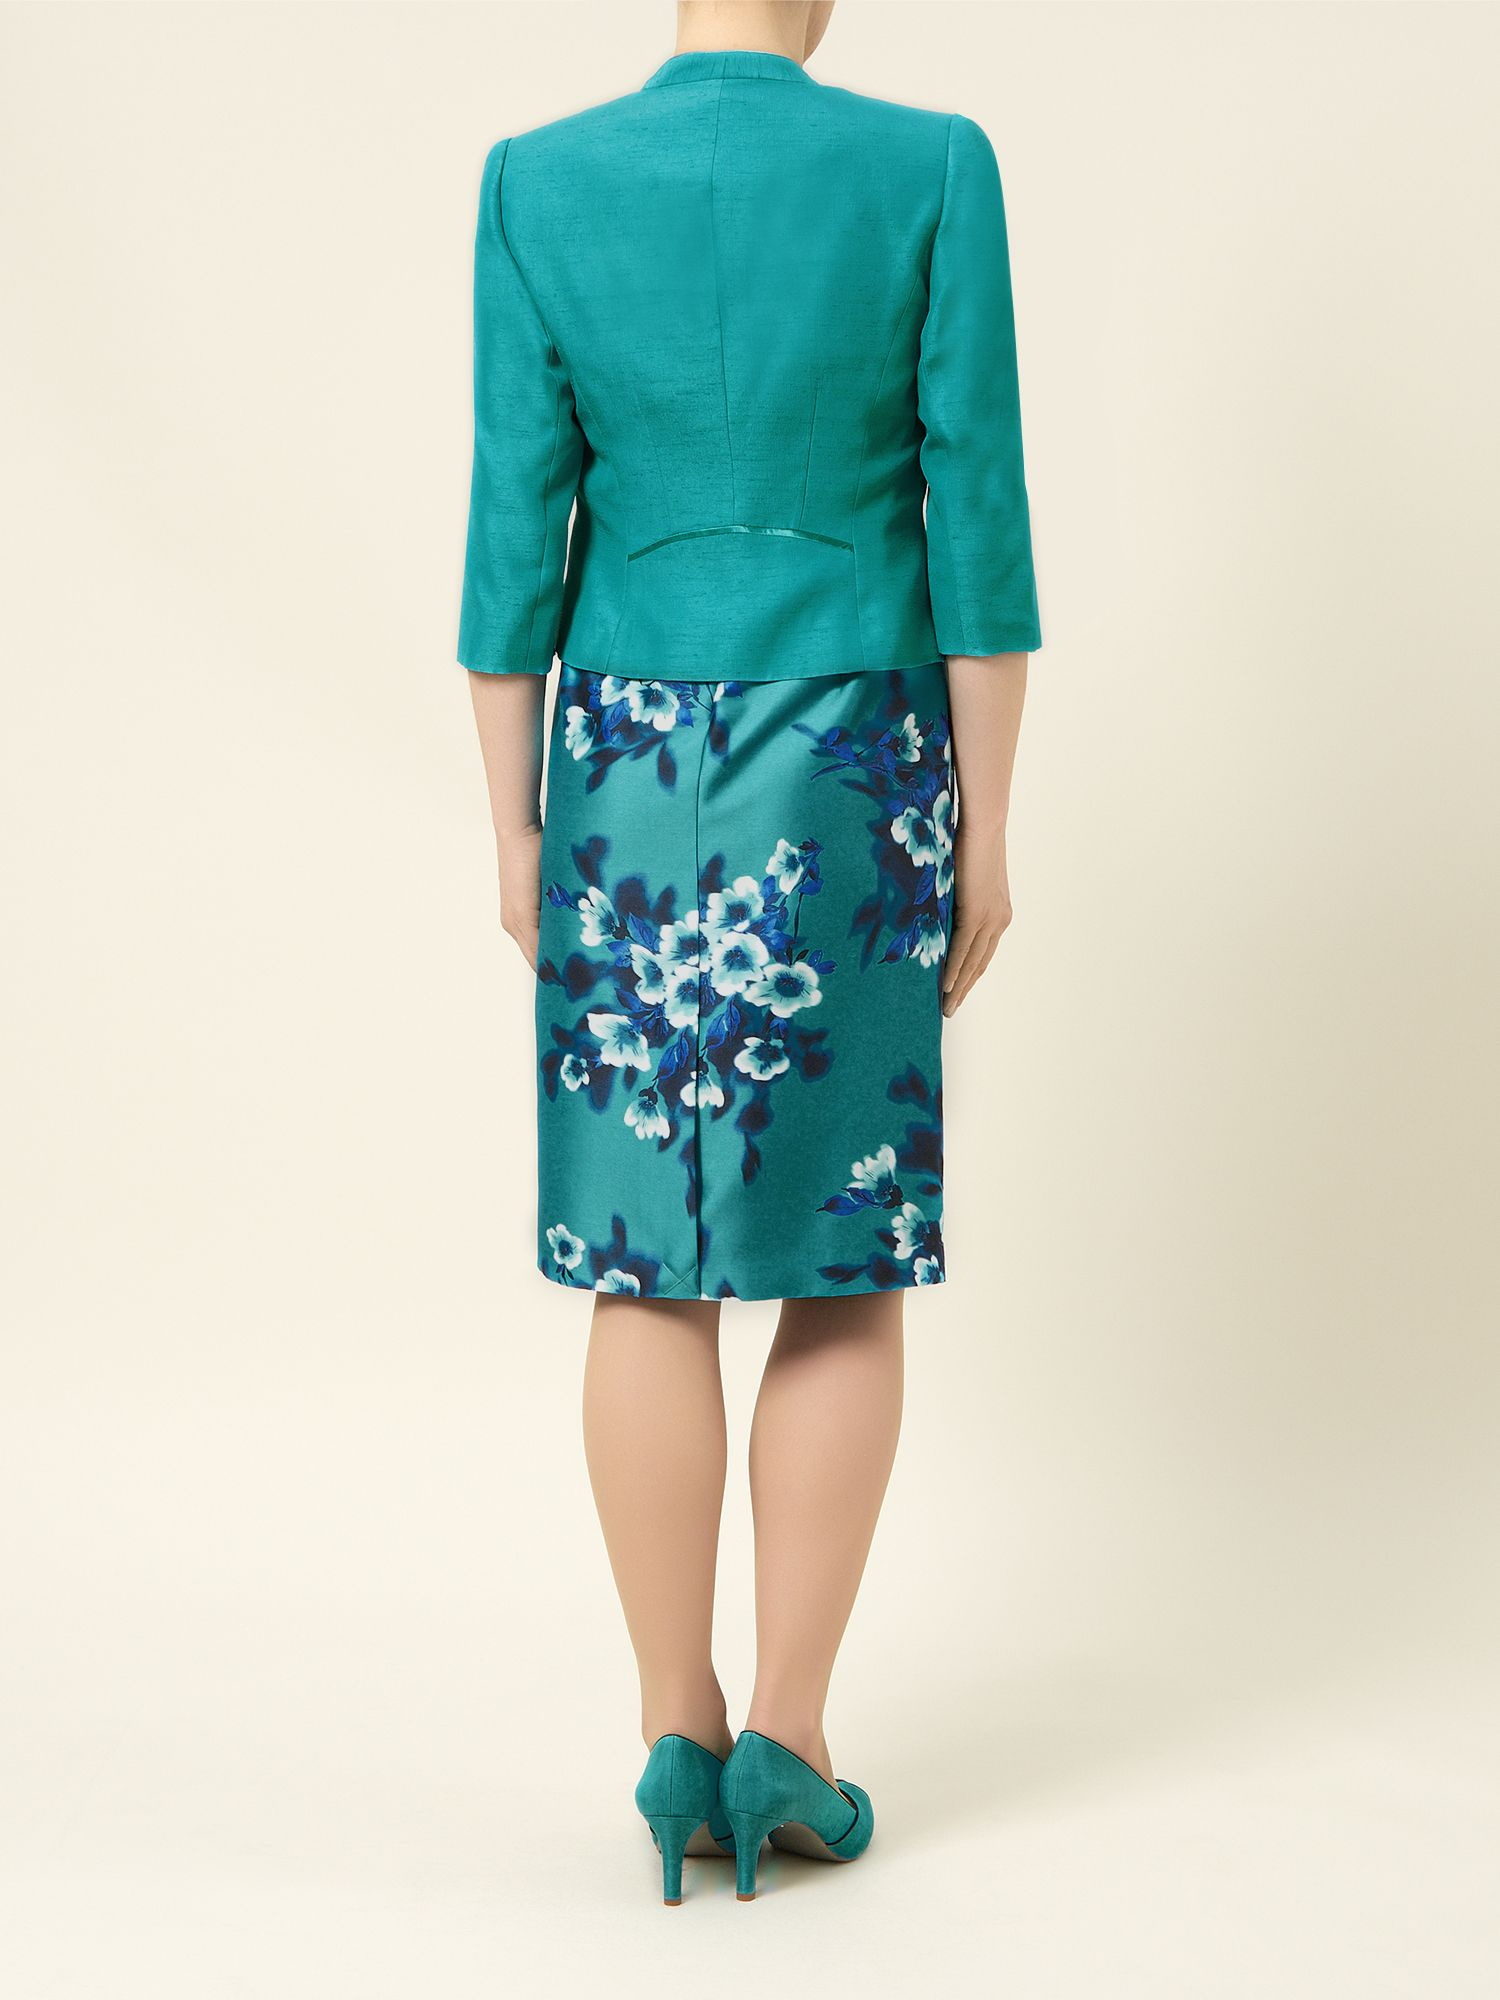 Lyst - Jacques Vert Edge To Edge Jacket in Blue